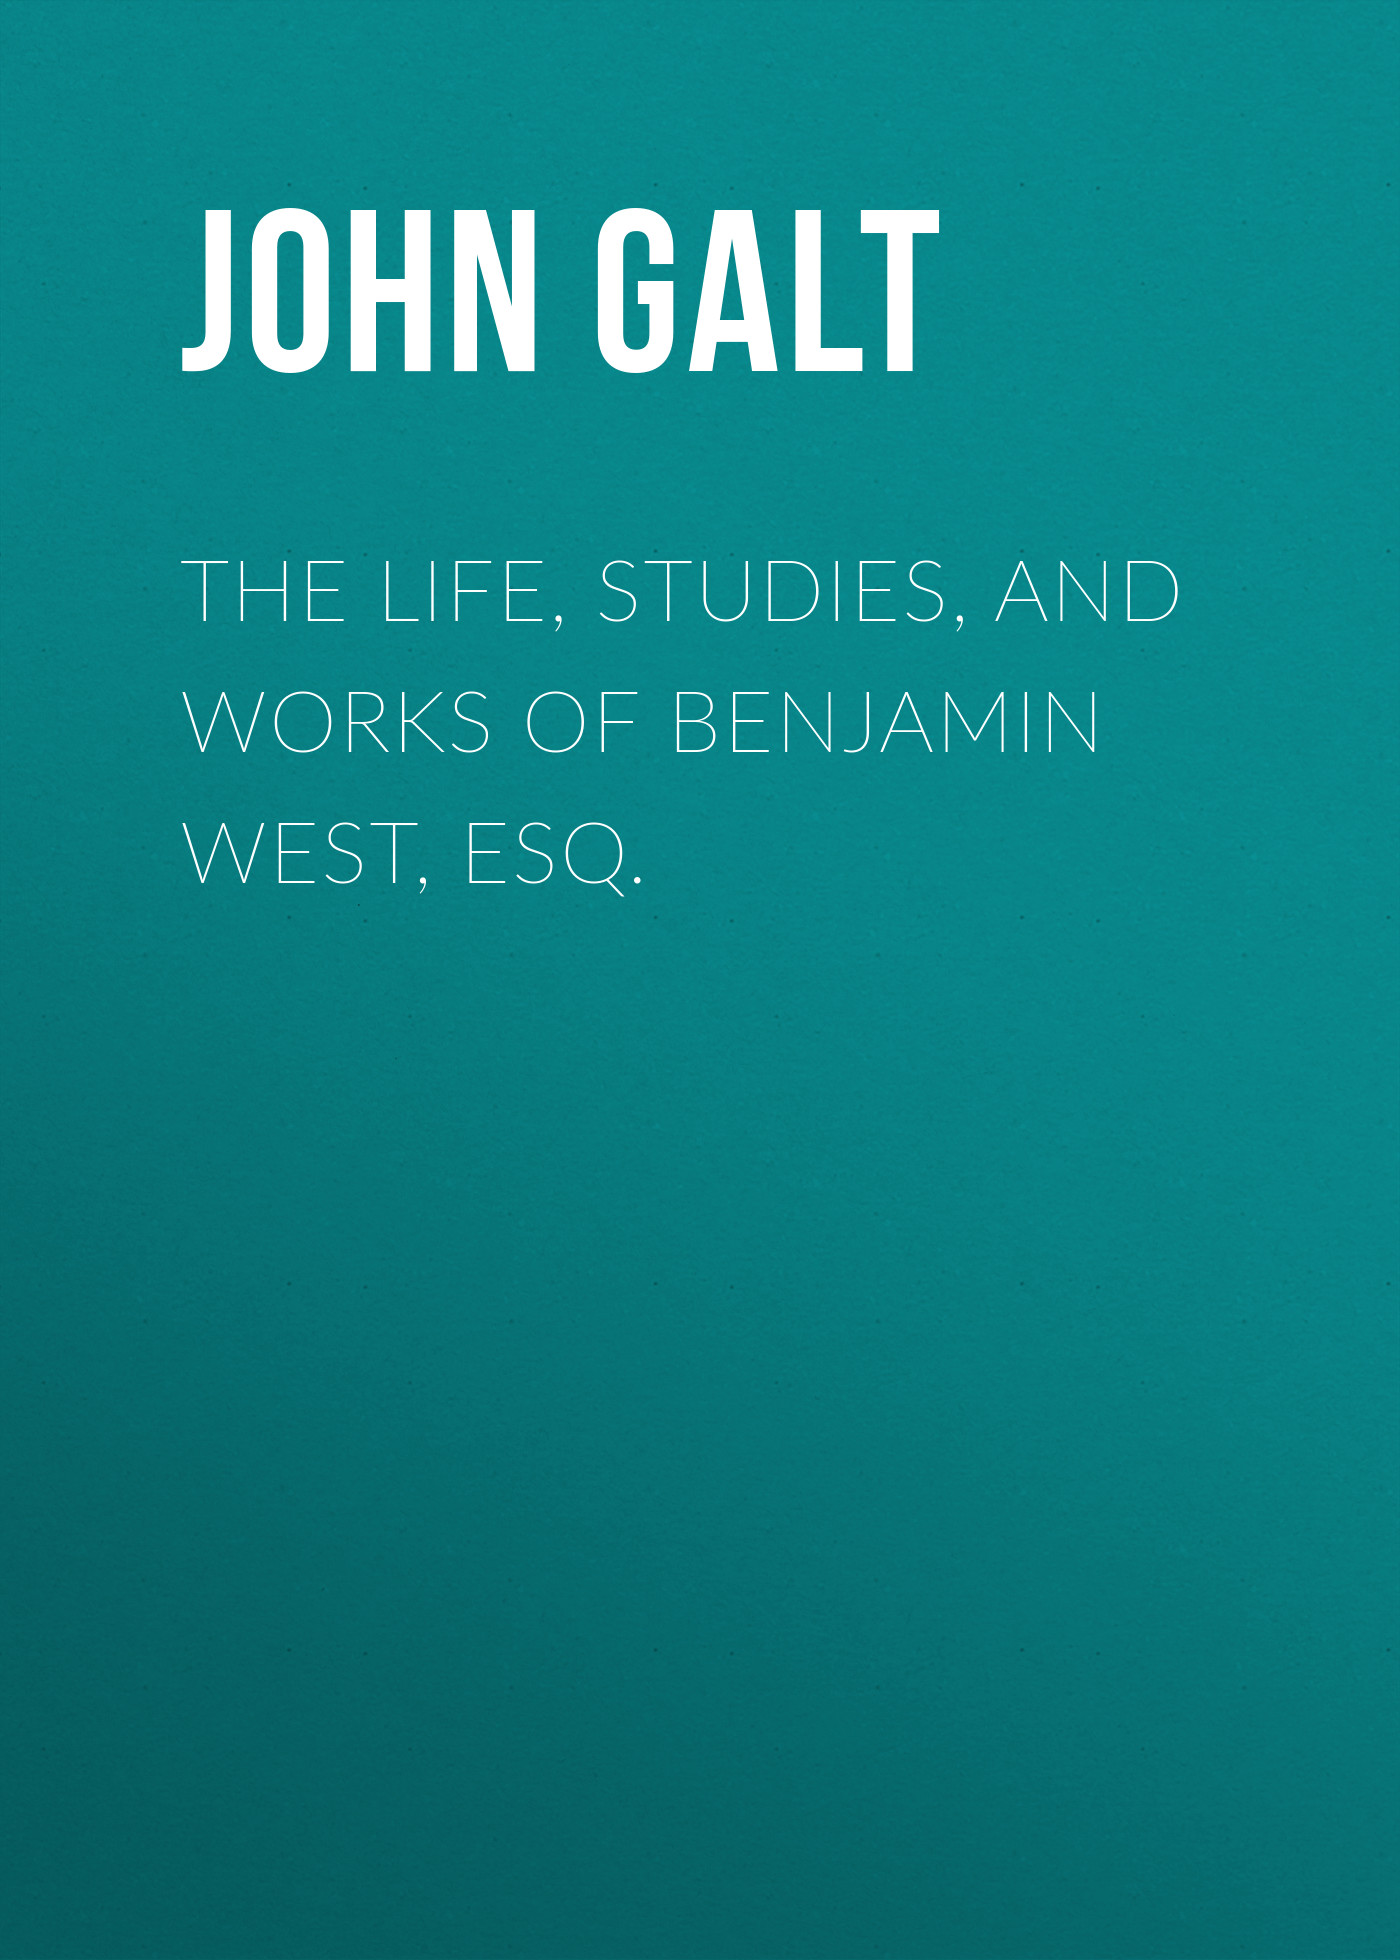 John Galt The Life, Studies, and Works of Benjamin West, Esq. donald luskin i am john galt today s heroic innovators building the world and the villainous parasites destroying it isbn 9781118100967